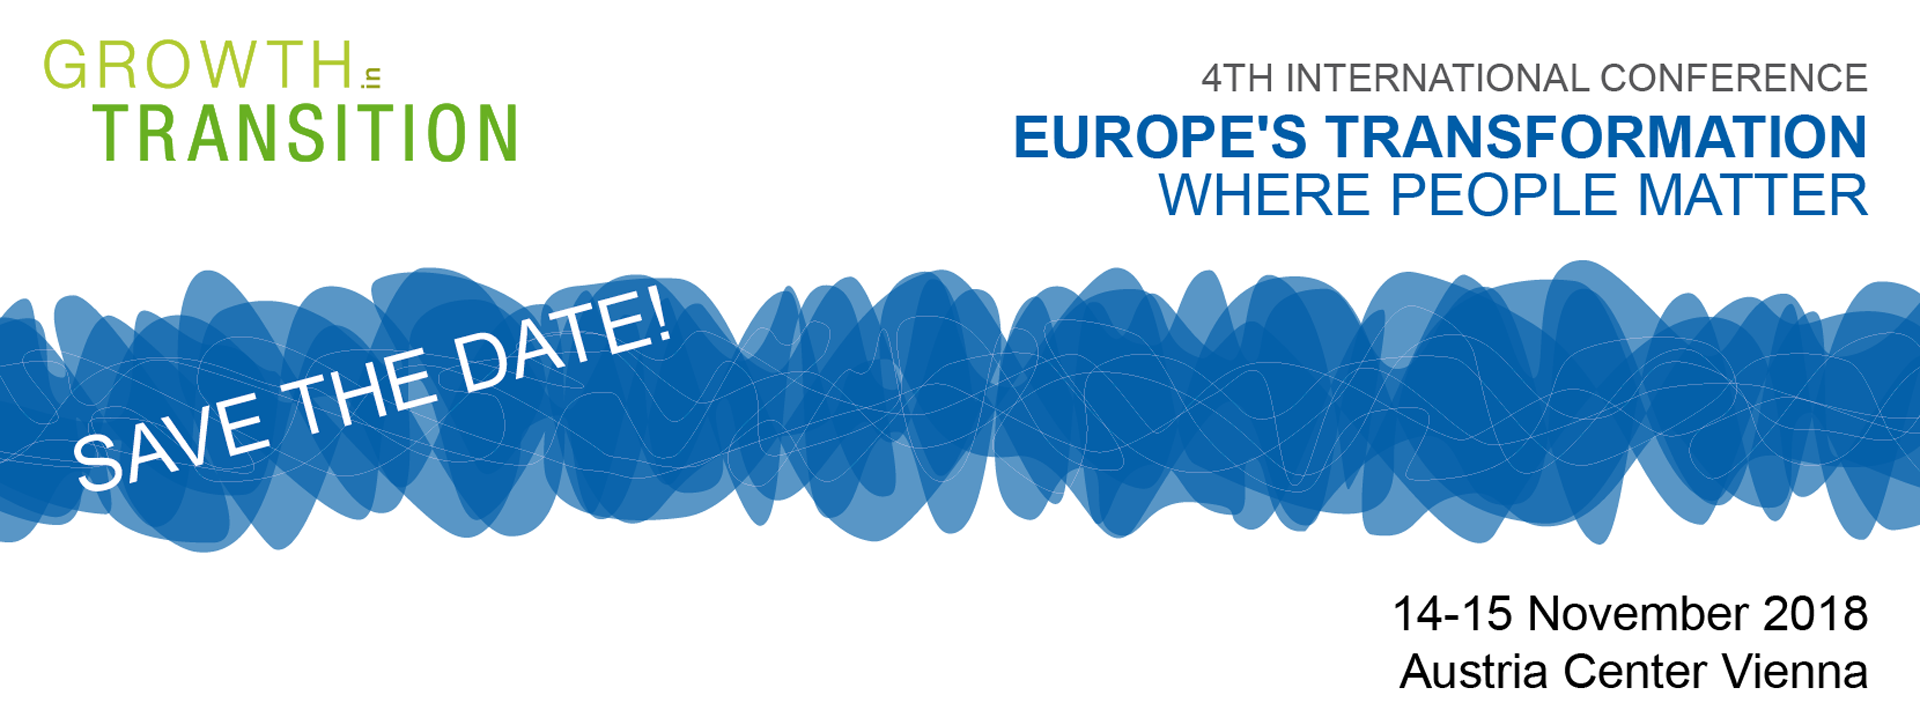 4th International Conference - Europes Transformation. Where people matter. 14 - 15 November 2018